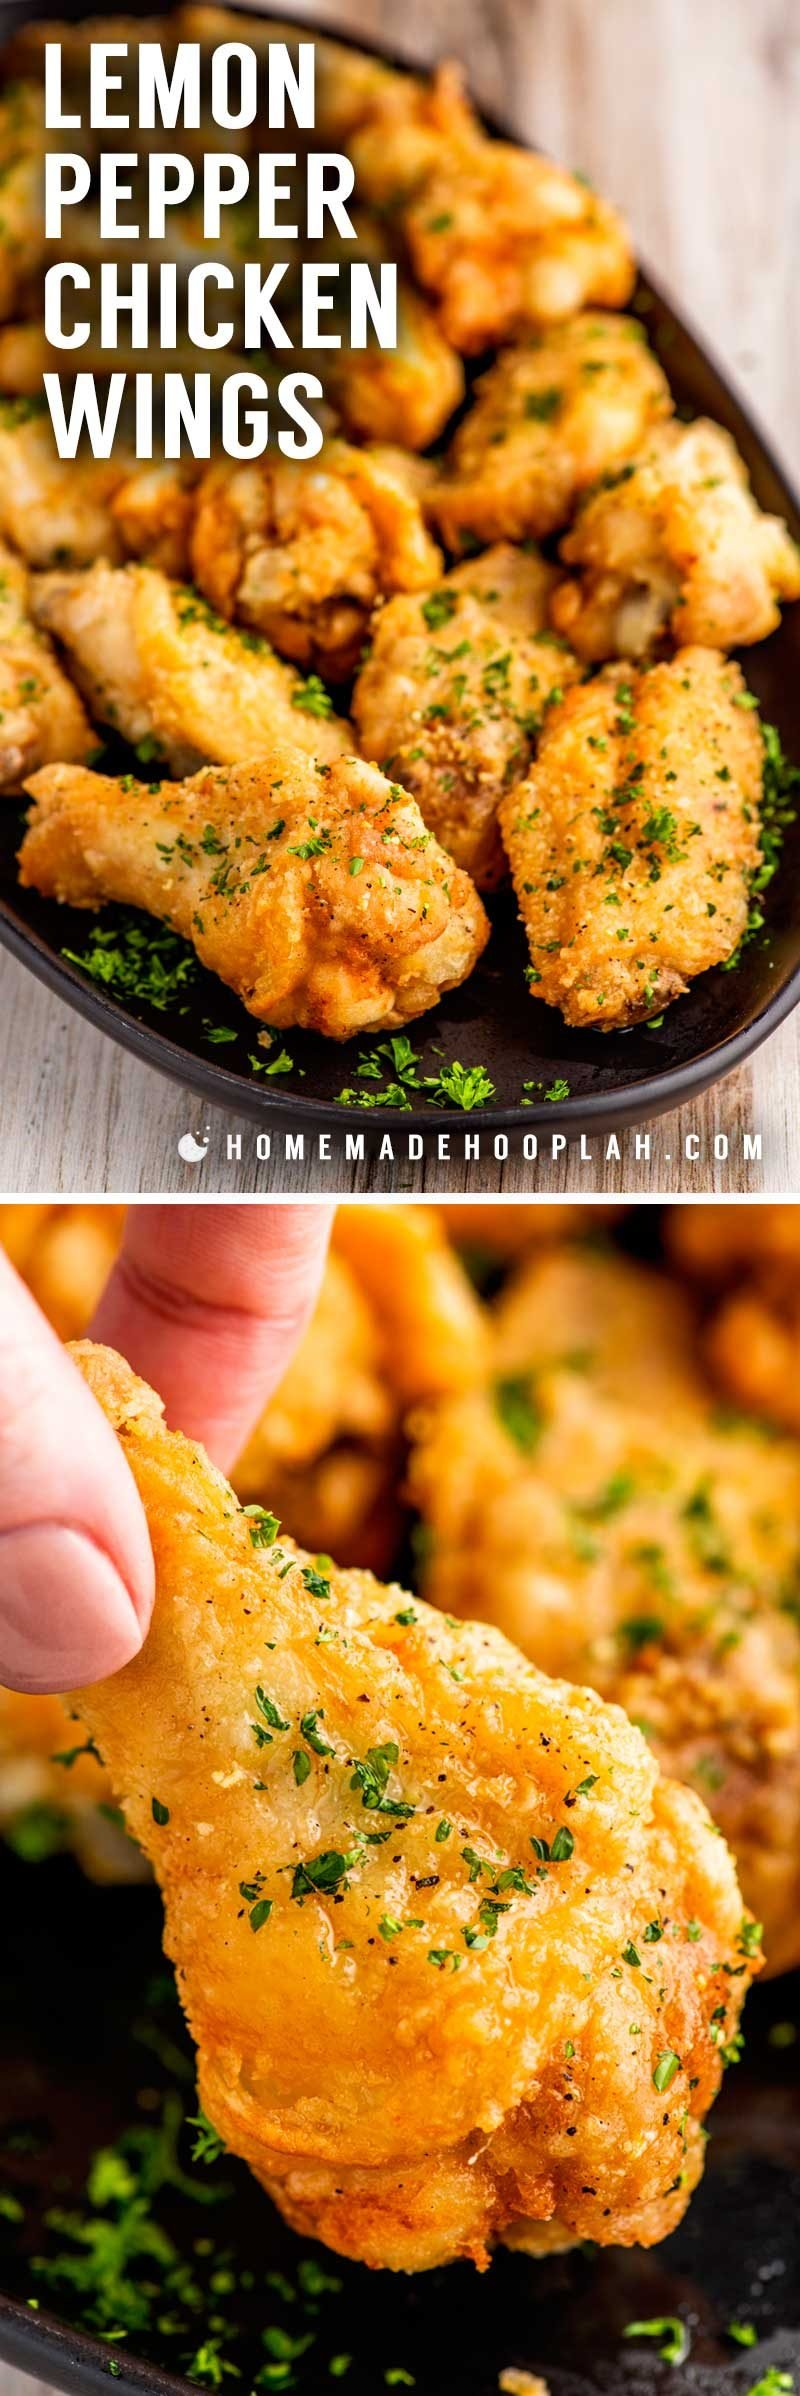 Lemon Pepper Chicken Wings! These lemon pepper chicken wings are freshly fried and coated in melted butter and lemon pepper seasoning. Perfect as party food or a quick weeknight dinner!   HomemadeHooplah.com